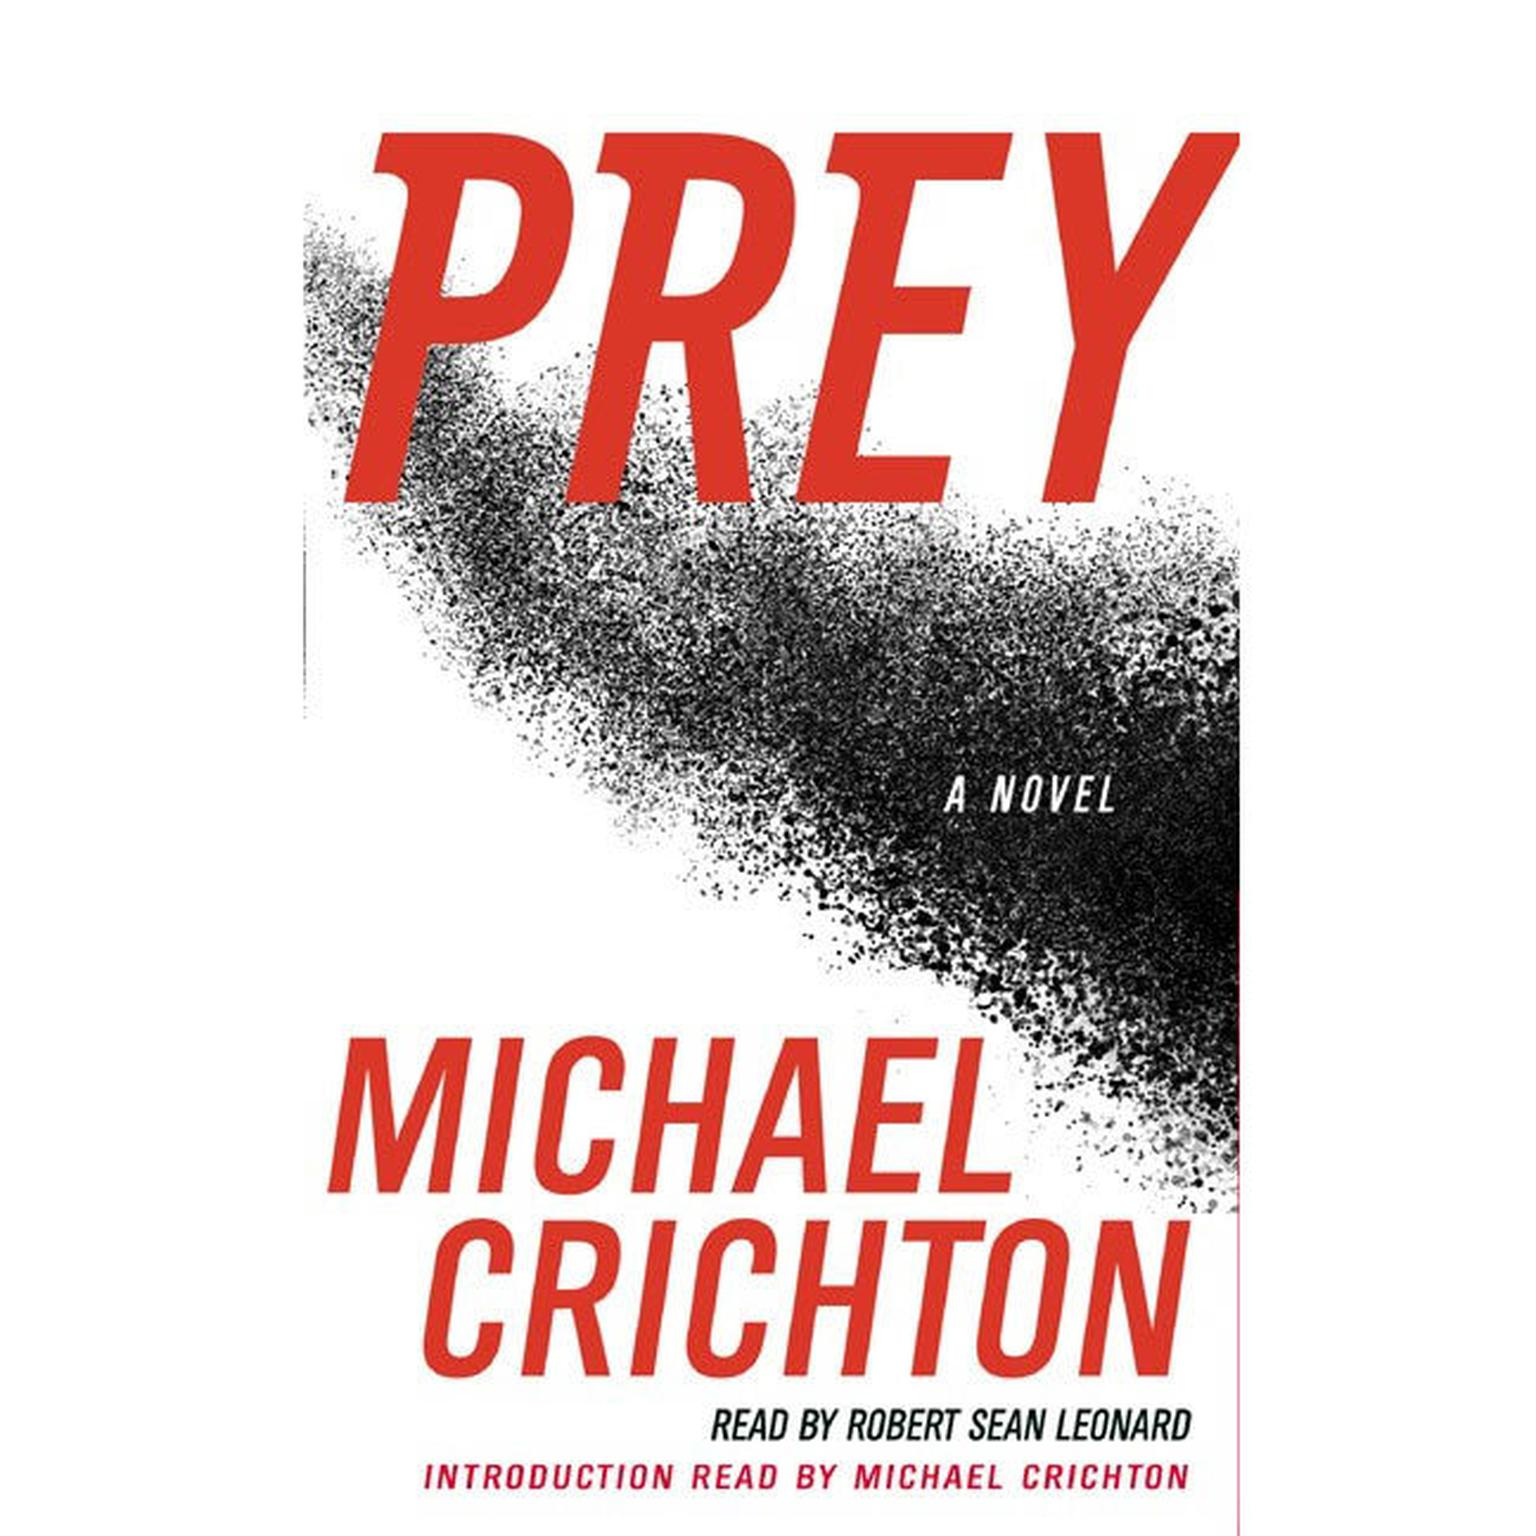 an analysis of timeline a novel by michael crichton 'timeline' by michael crichton november 10 (cnn) -- michael crichton's new novel opens on the but he was still working at some analysis in the.